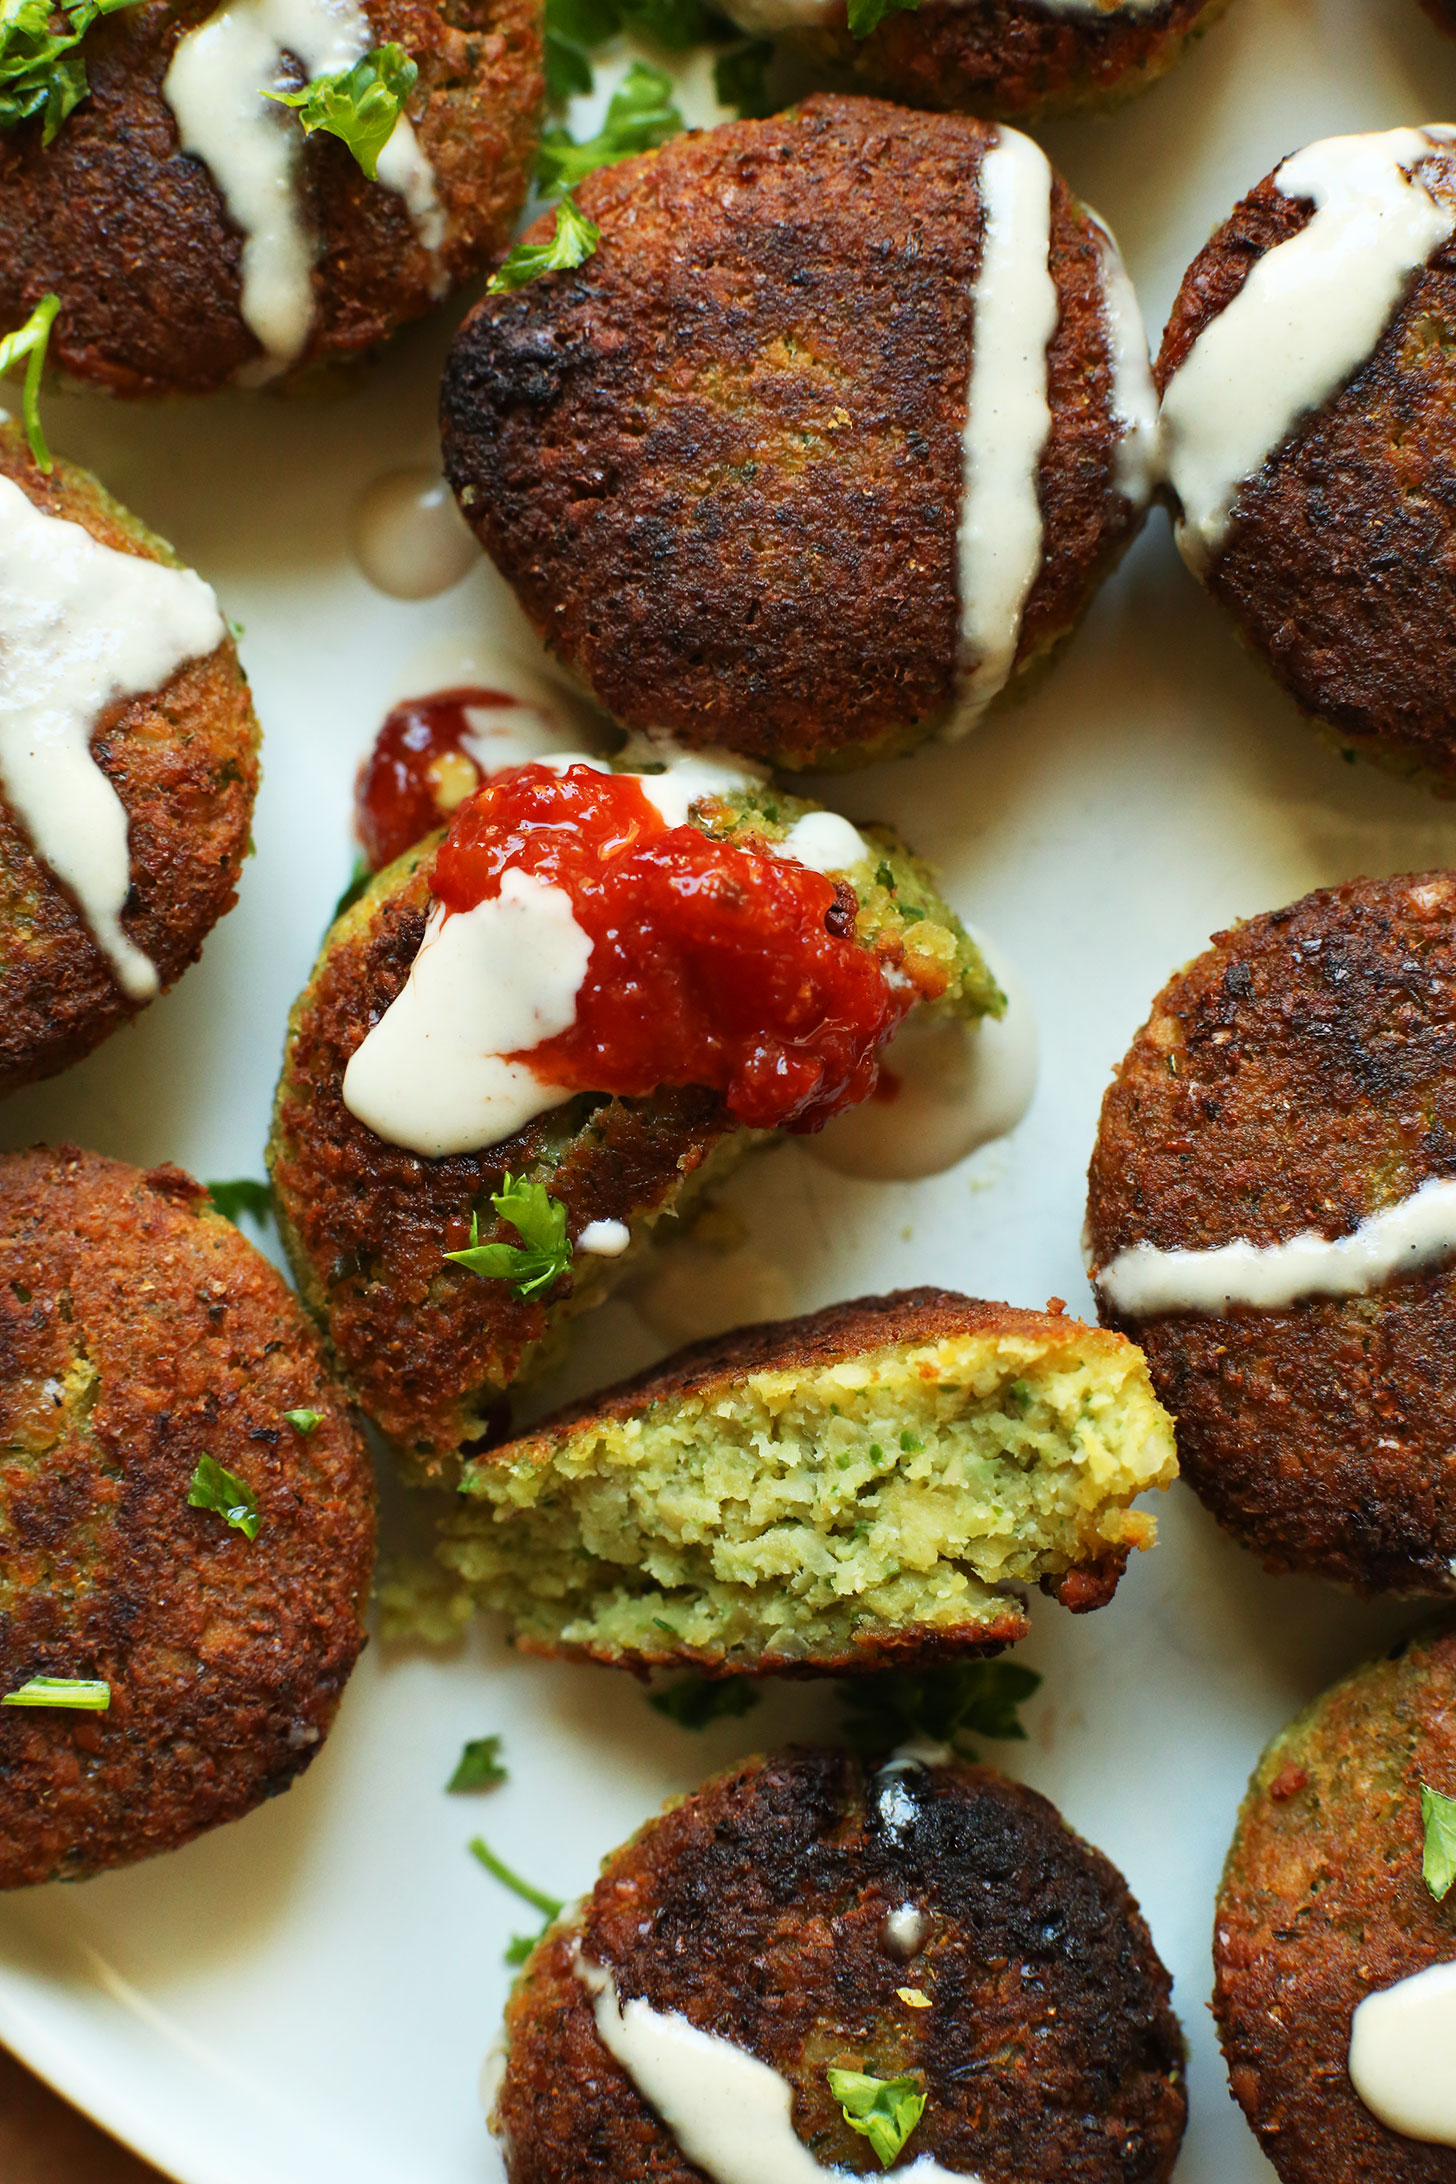 Delicious bites of gluten-free vegan falafel drizzled with tahini sauce